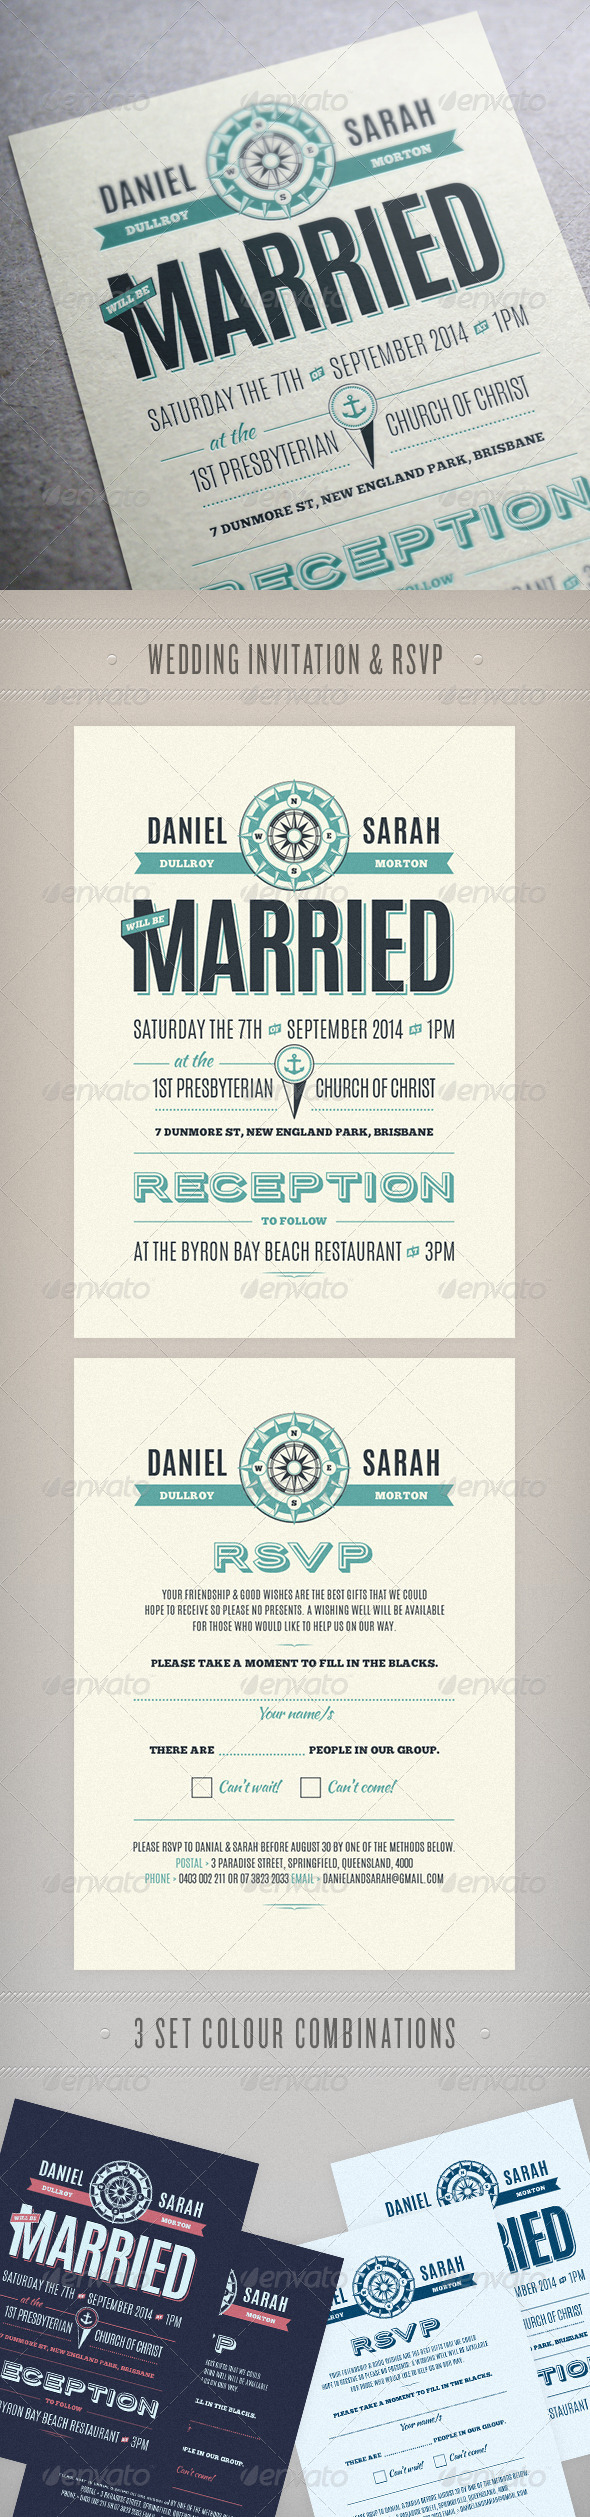 Nautical Wedding Invite - Weddings Cards & Invites